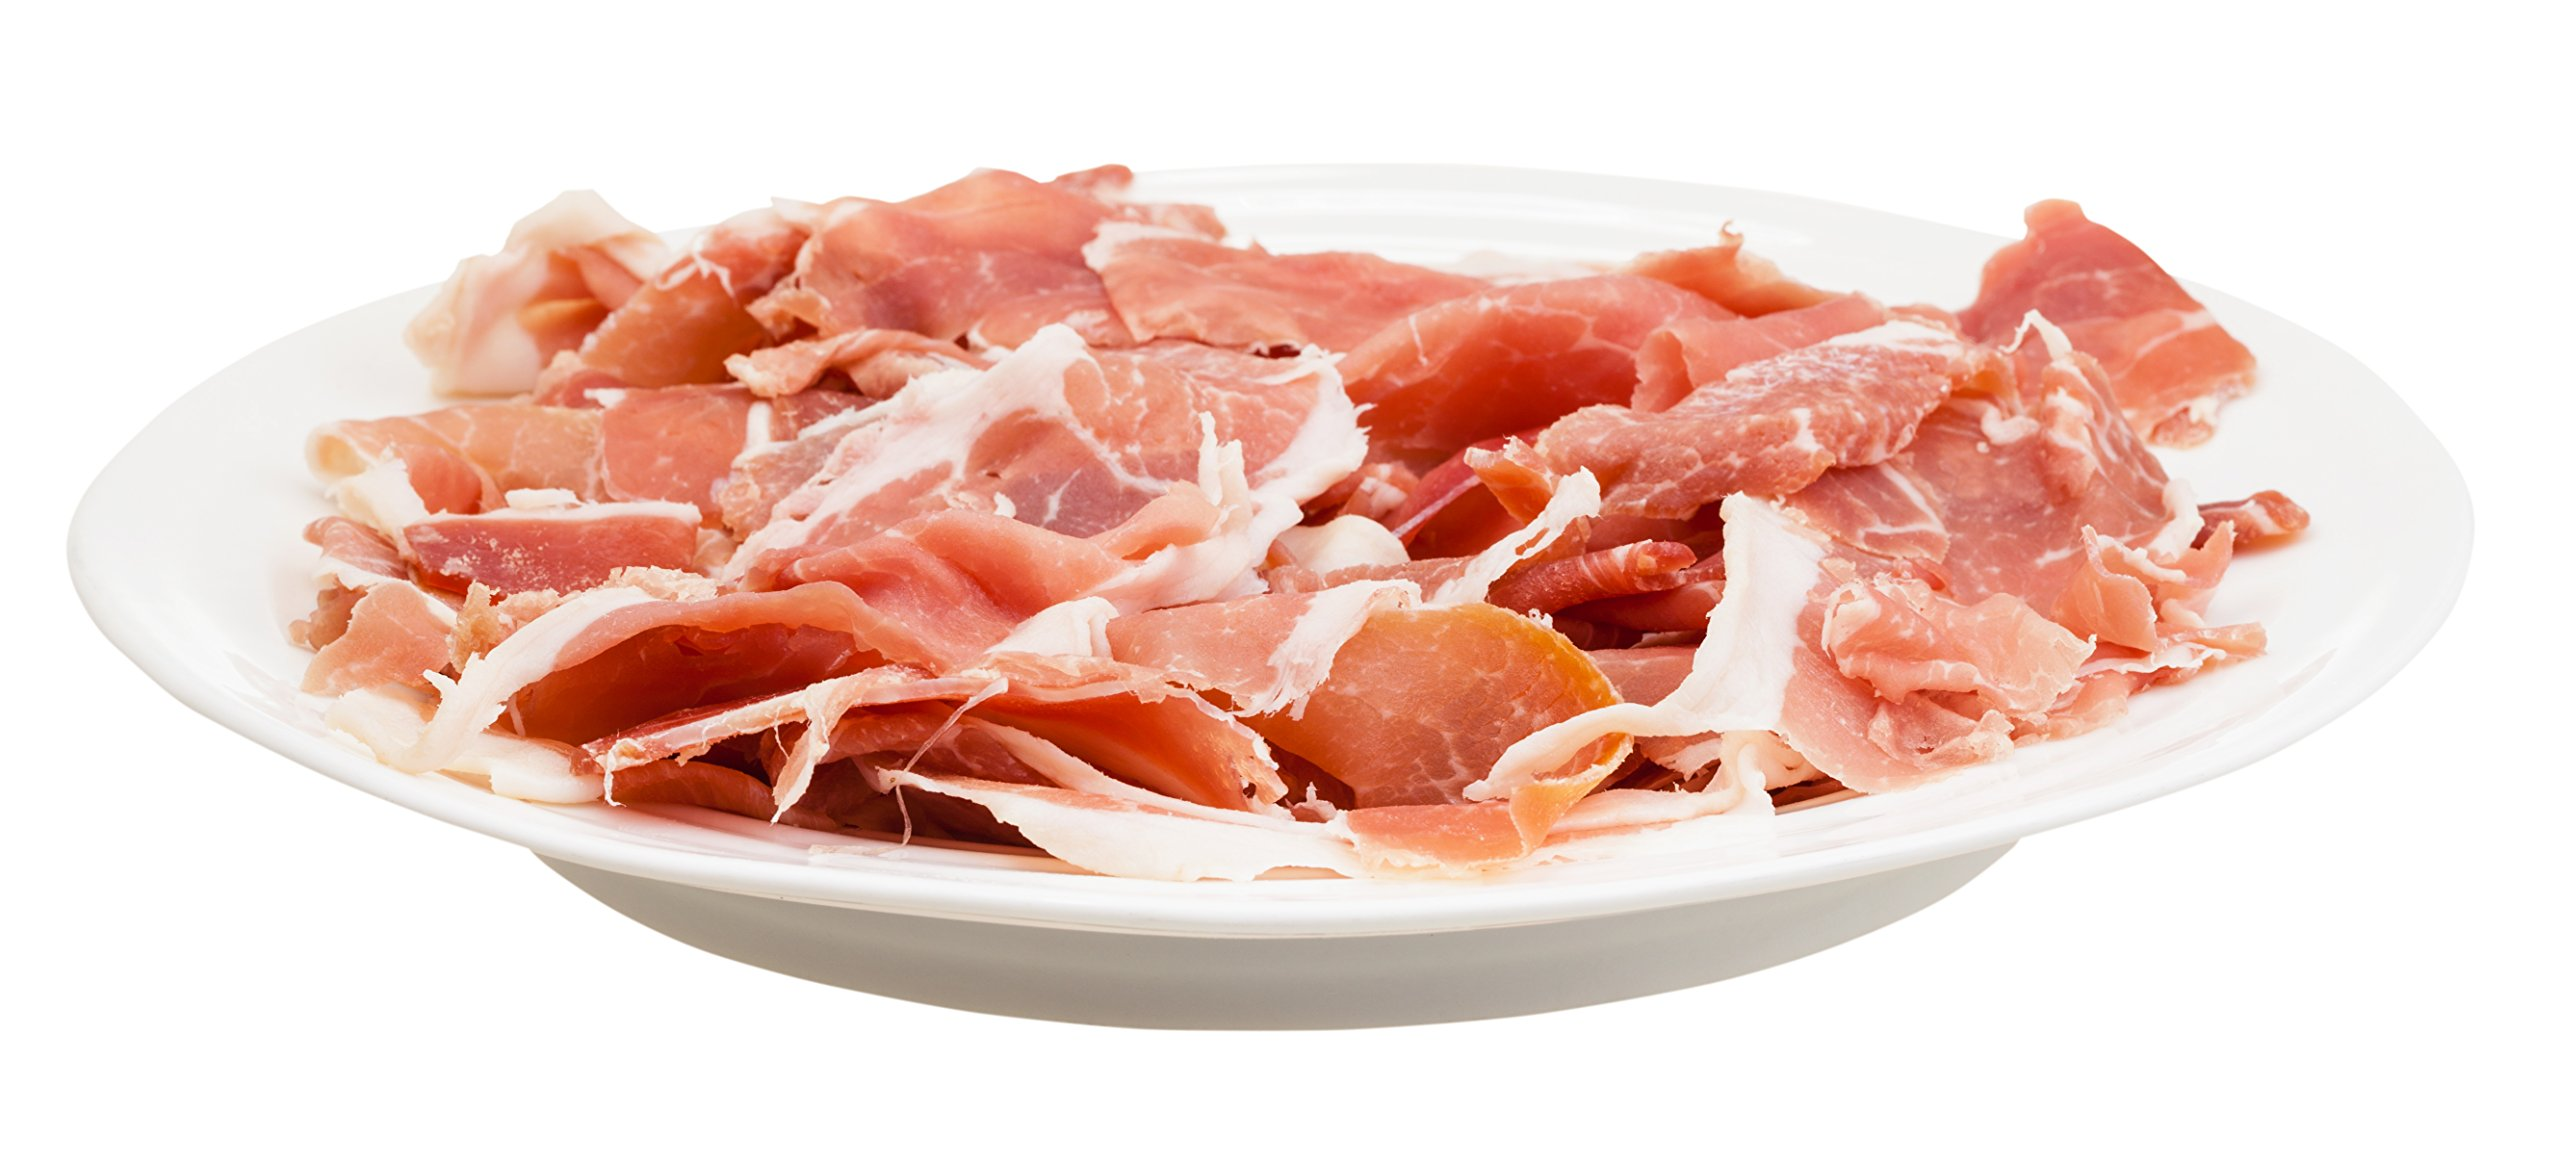 Iberico Ham, Hand-Carved, Three 3 oz Packages by Cinco Jotas (5J) (Image #3)